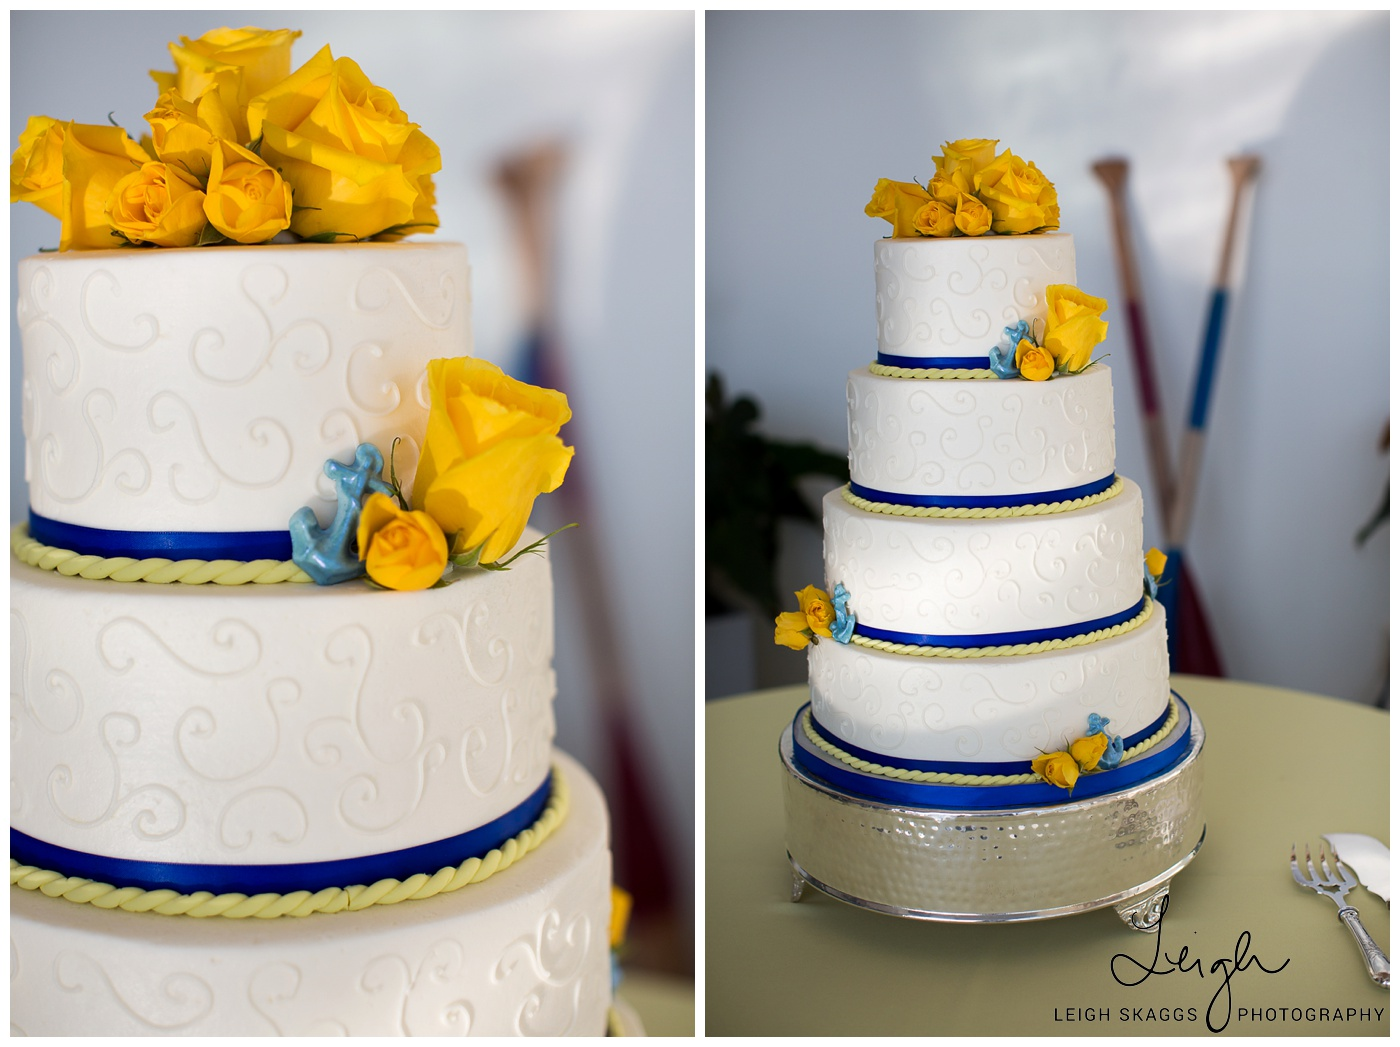 Ask the Experts | Cake Delights